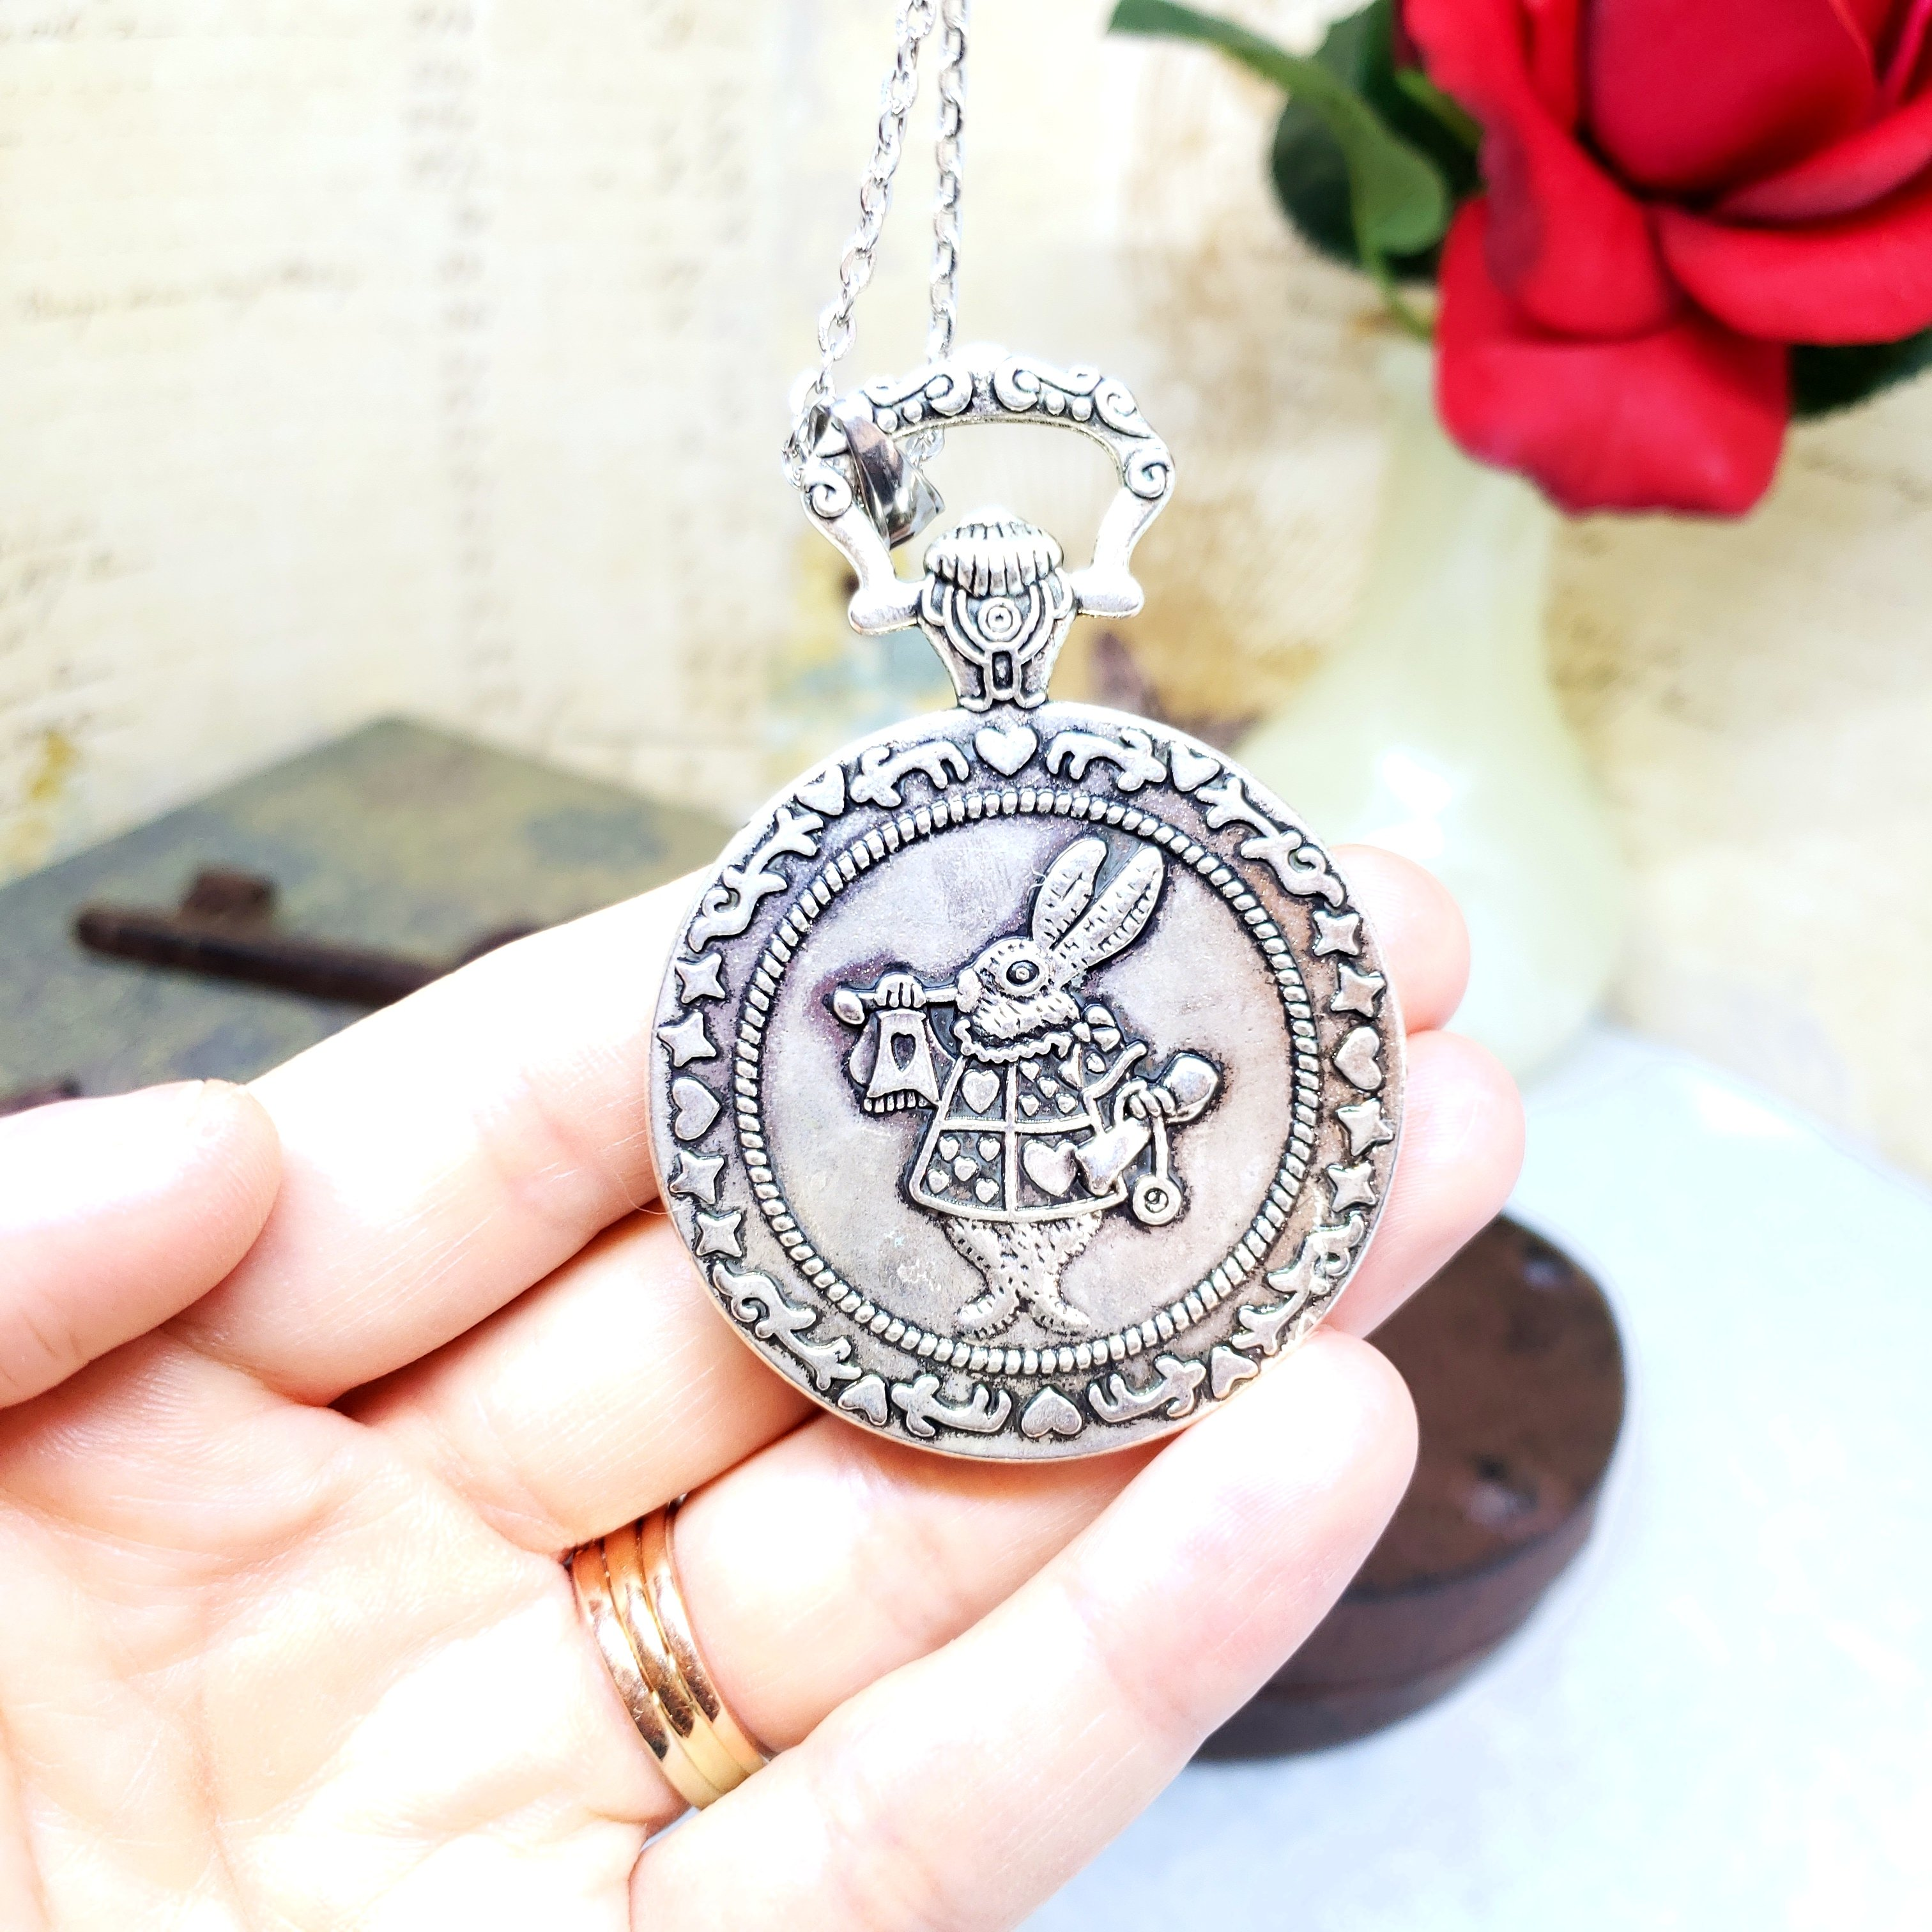 Alice in Wonderland Large Pocket Watch Necklace in Silver ...